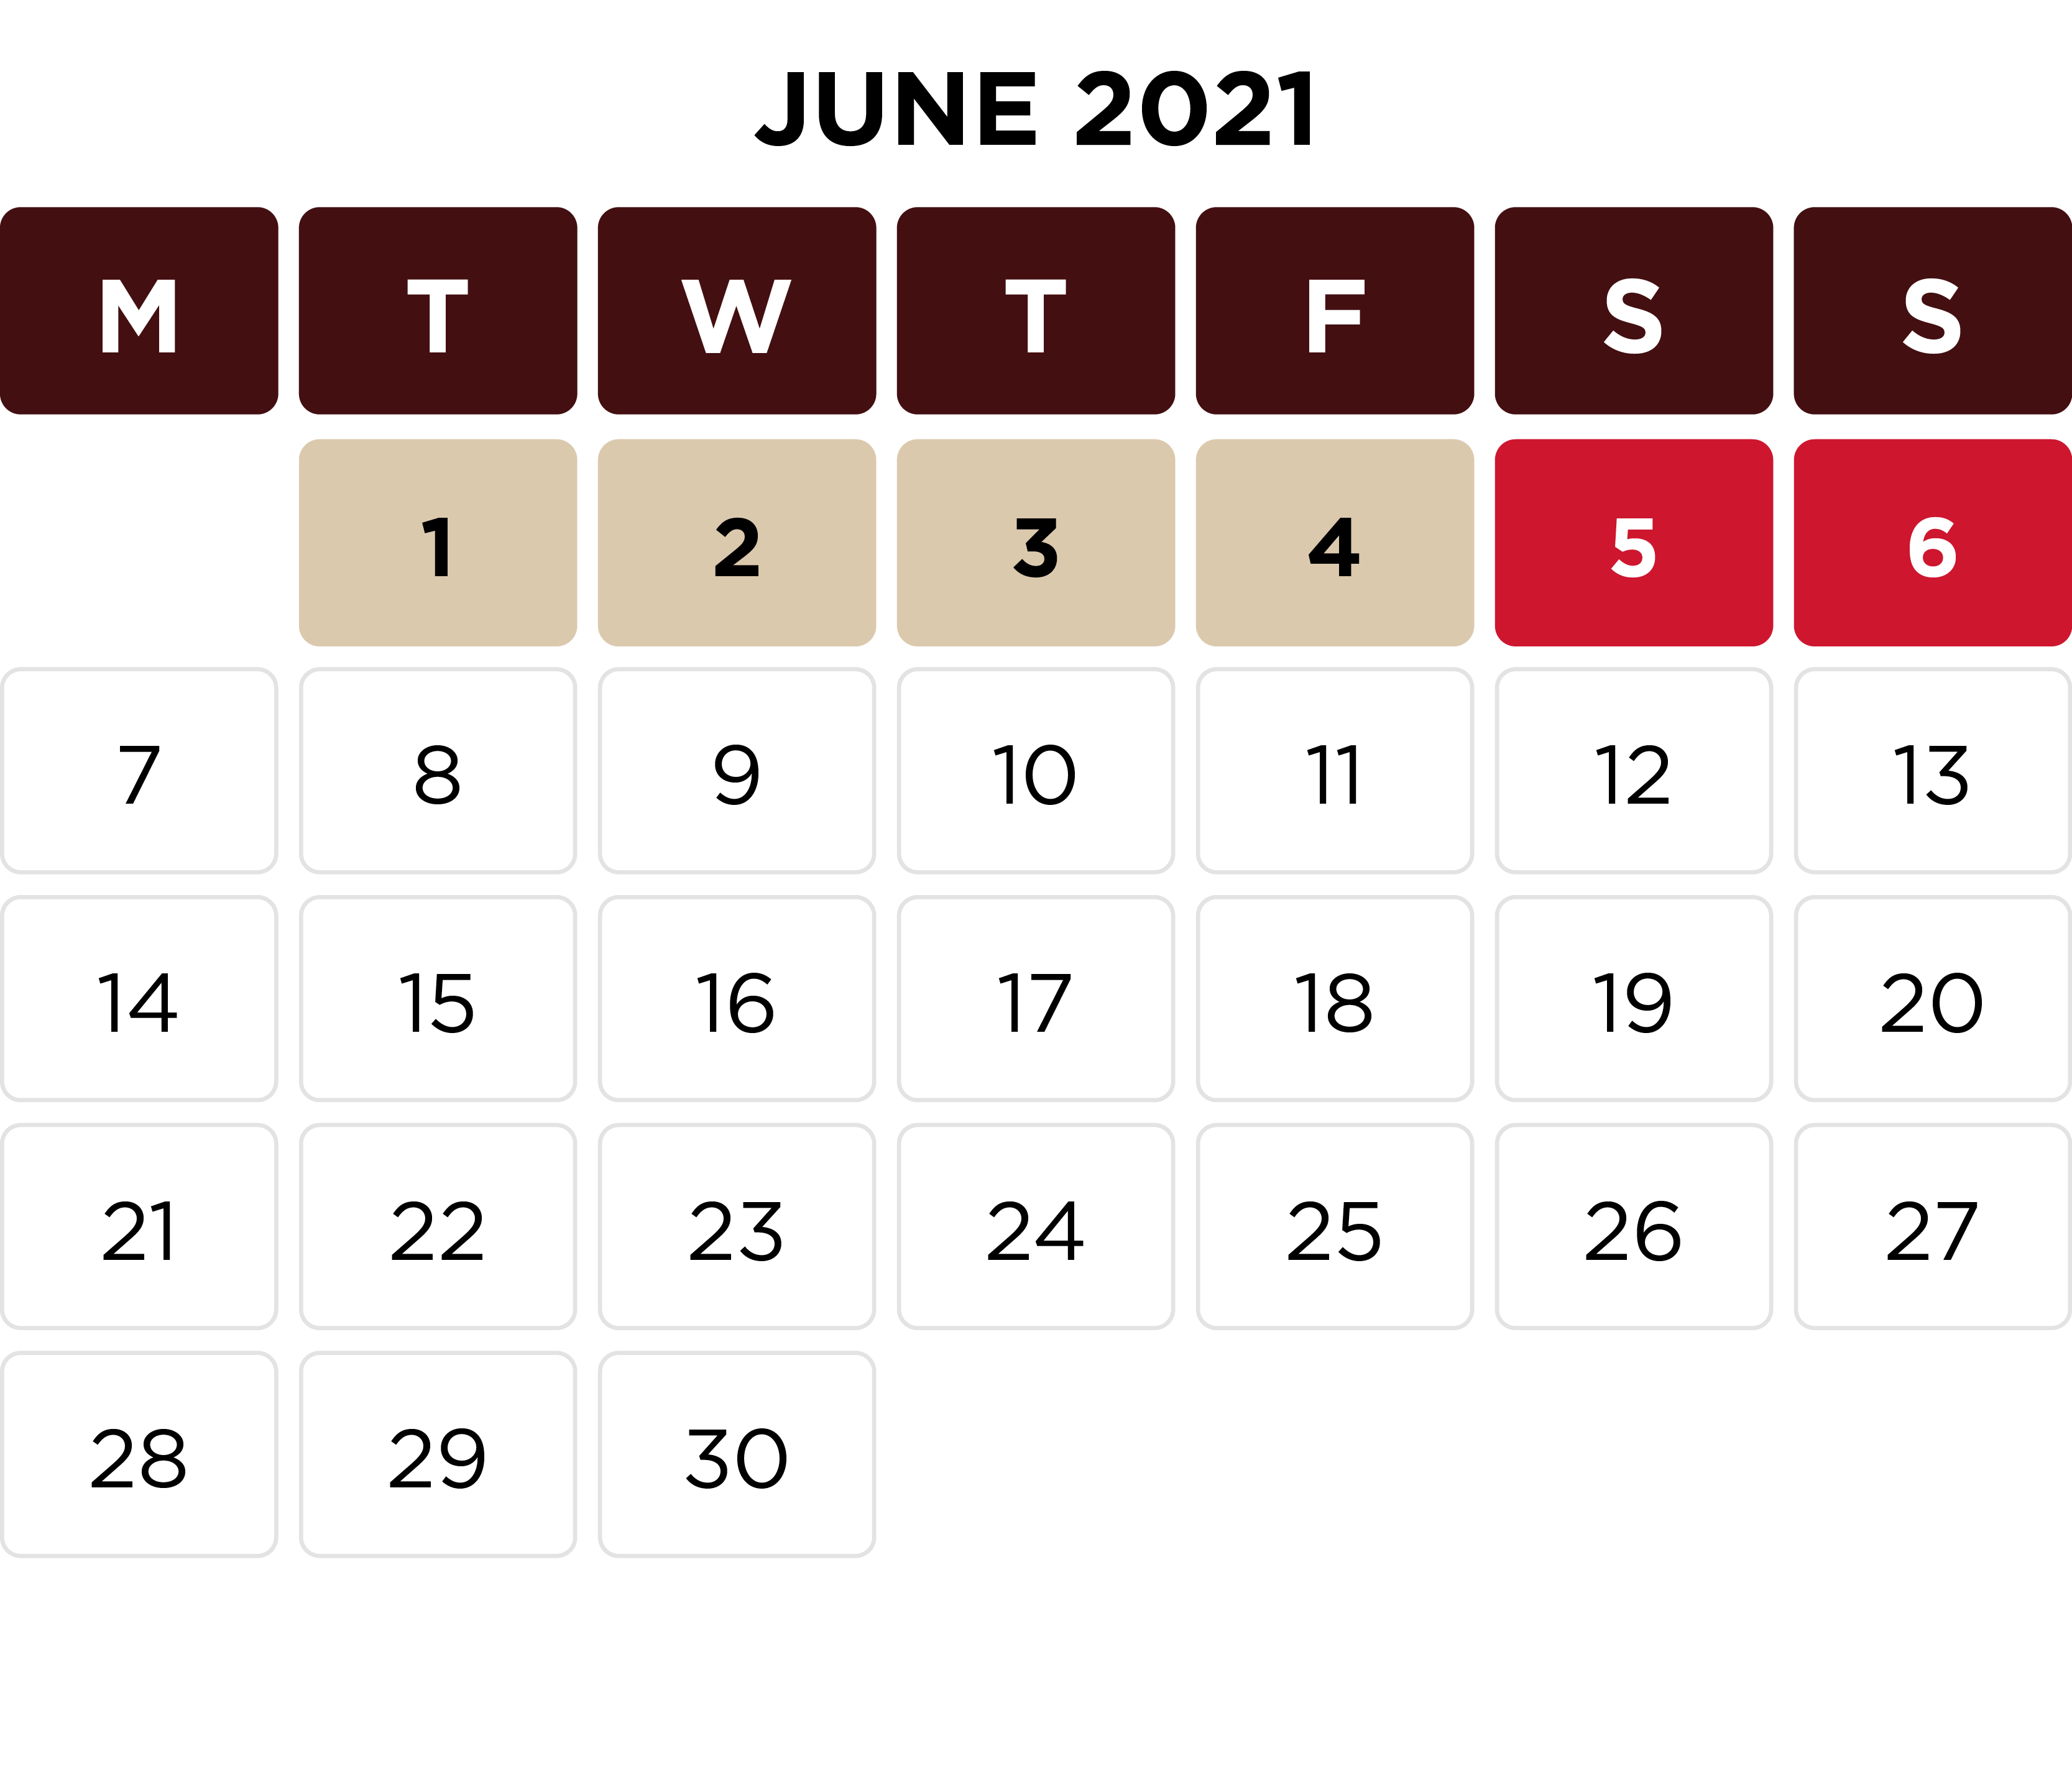 LNER1078 East Coast Upgrade 2020-21 Dates - Web Graphic Month Supply 800x688px - 08 June 2021.png